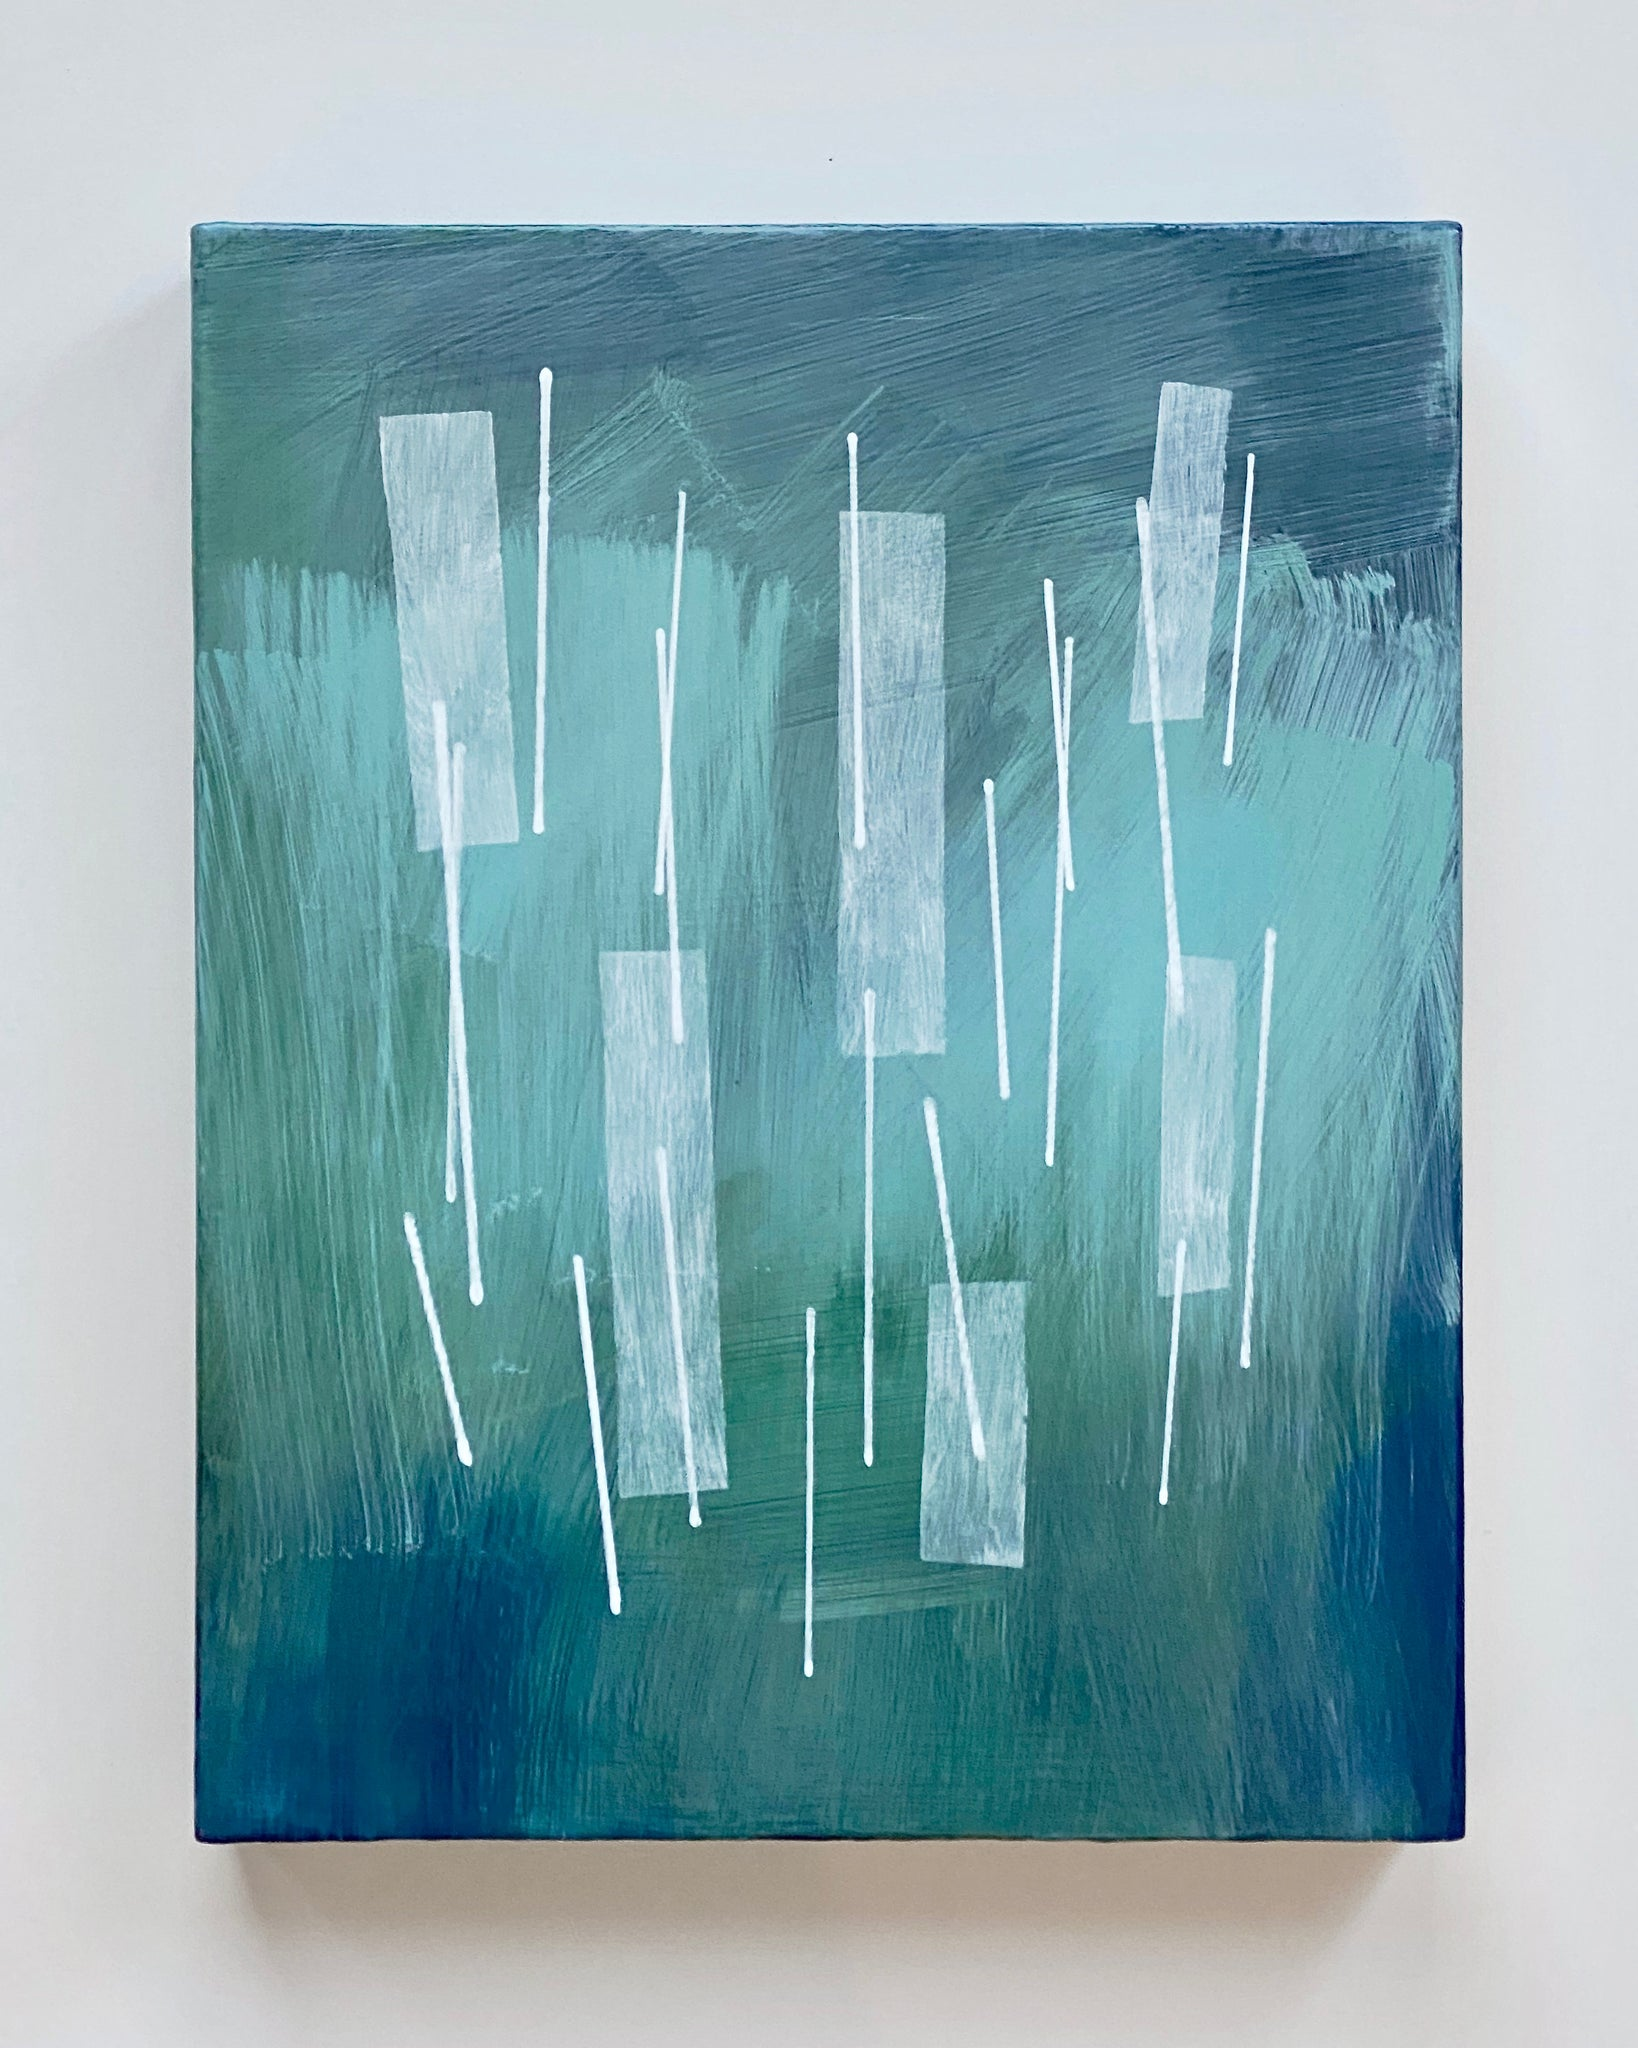 Squall III, commissioned acrylic on panel painting by Janet Taylor.